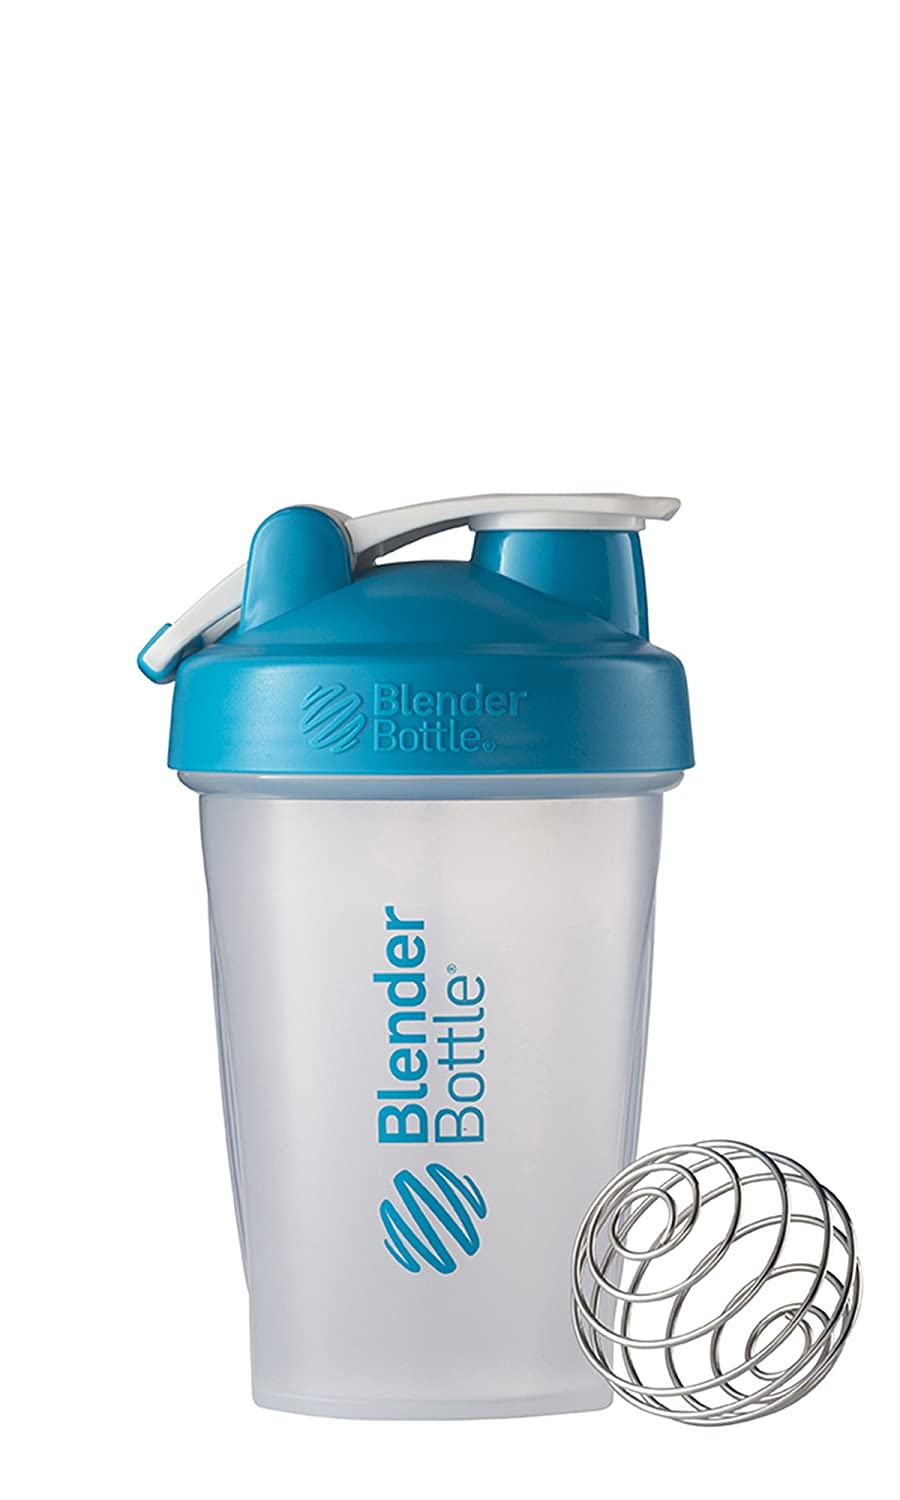 blender bottle aqua 20 ounce